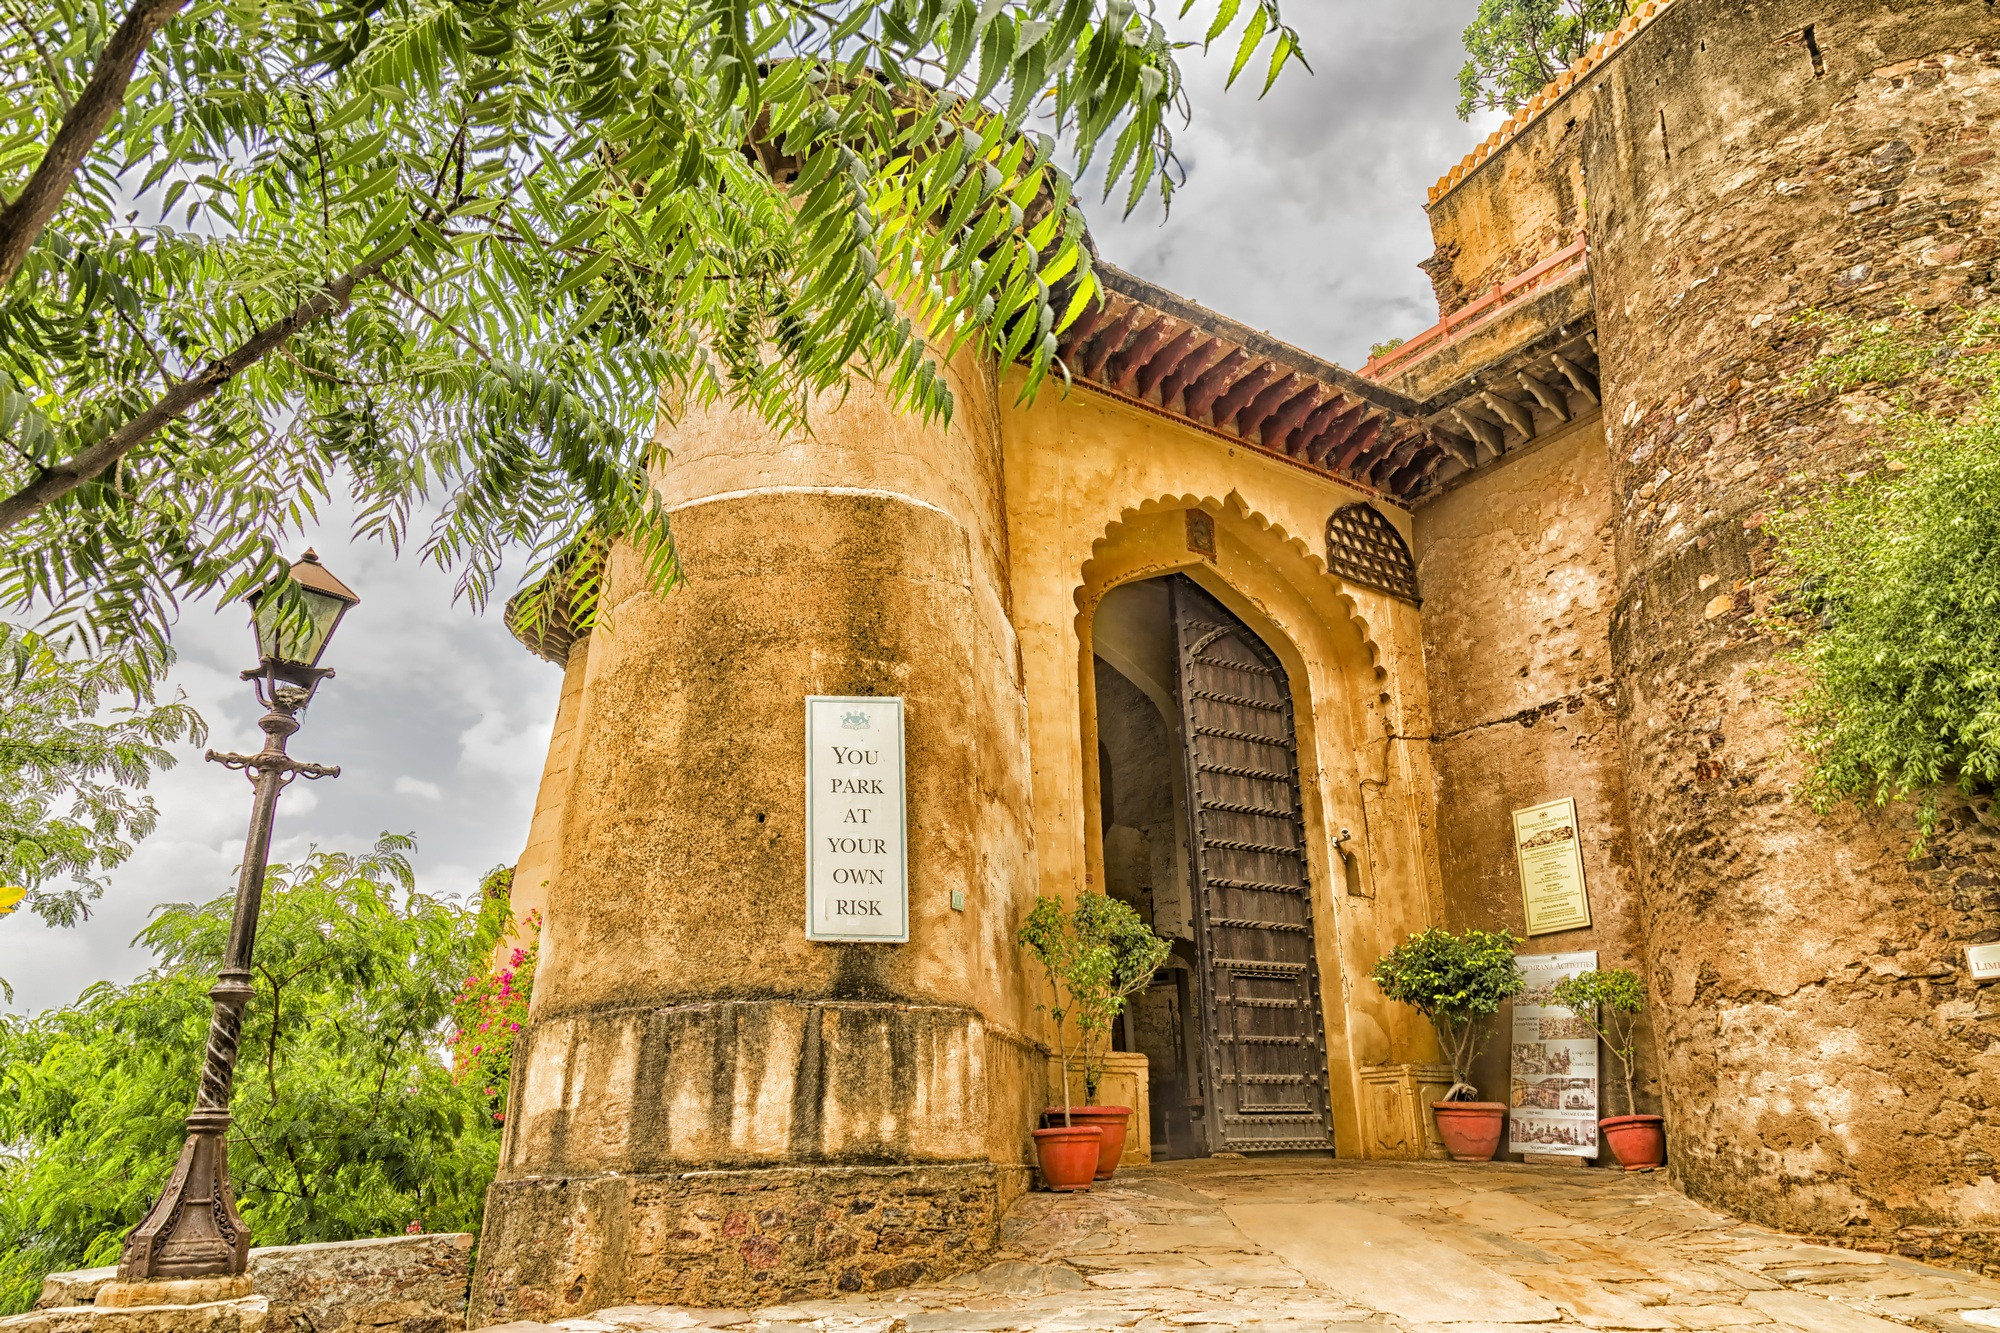 Main Gate of Neemrana Fort, Rajasthan